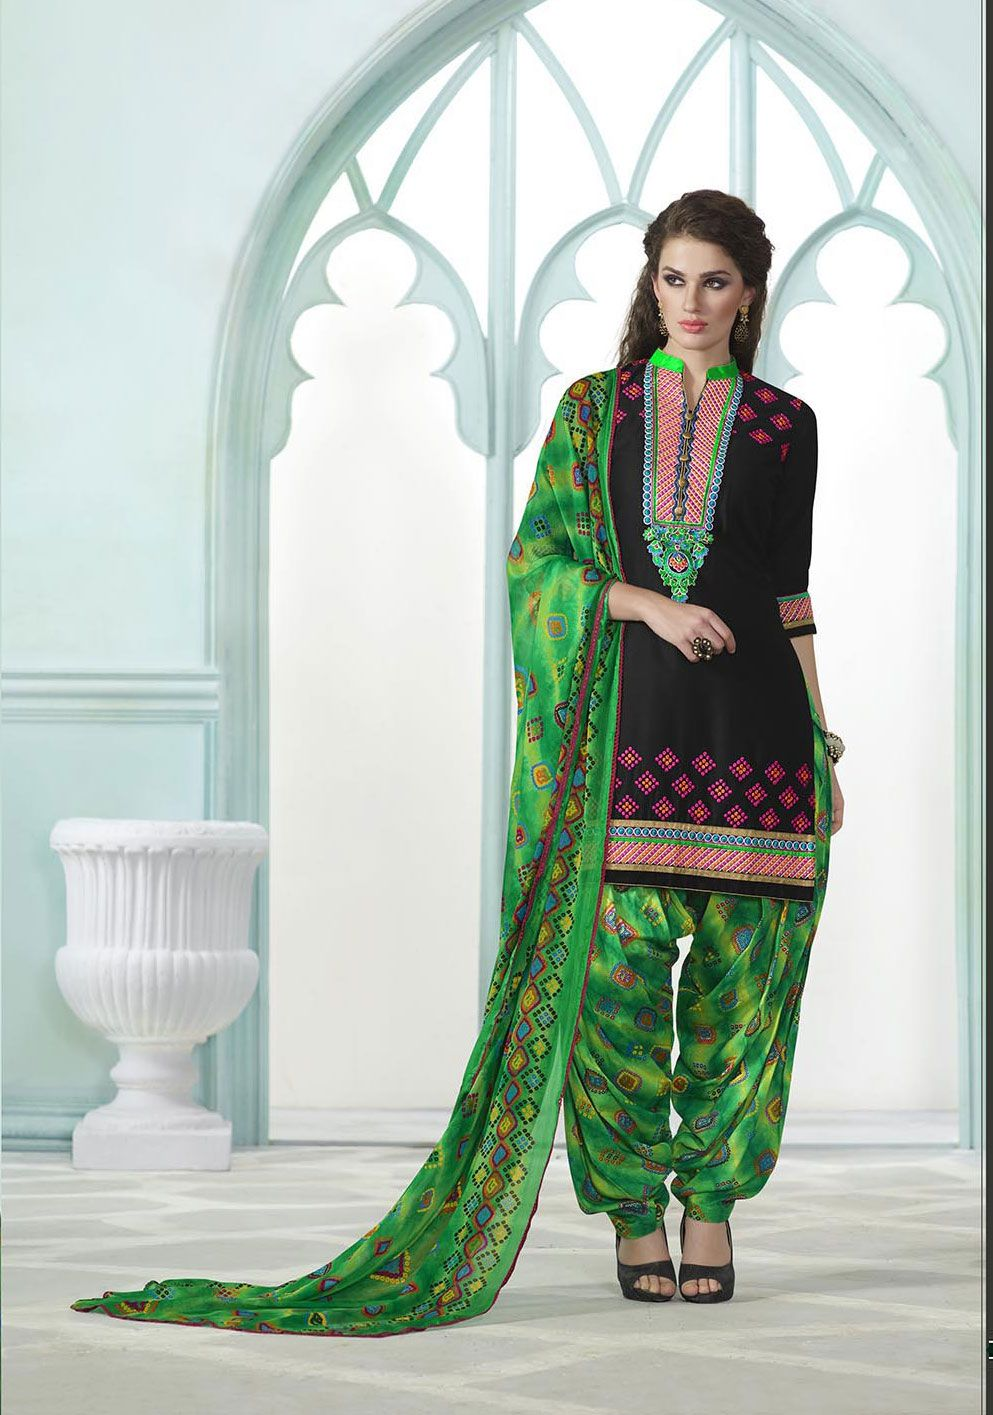 0cfef6cd60 #Black And #Green #Cotton Embroidered #Patiala #Suit #nikvik #usa #designer  #australia #canada #freeshipping #dress #suits